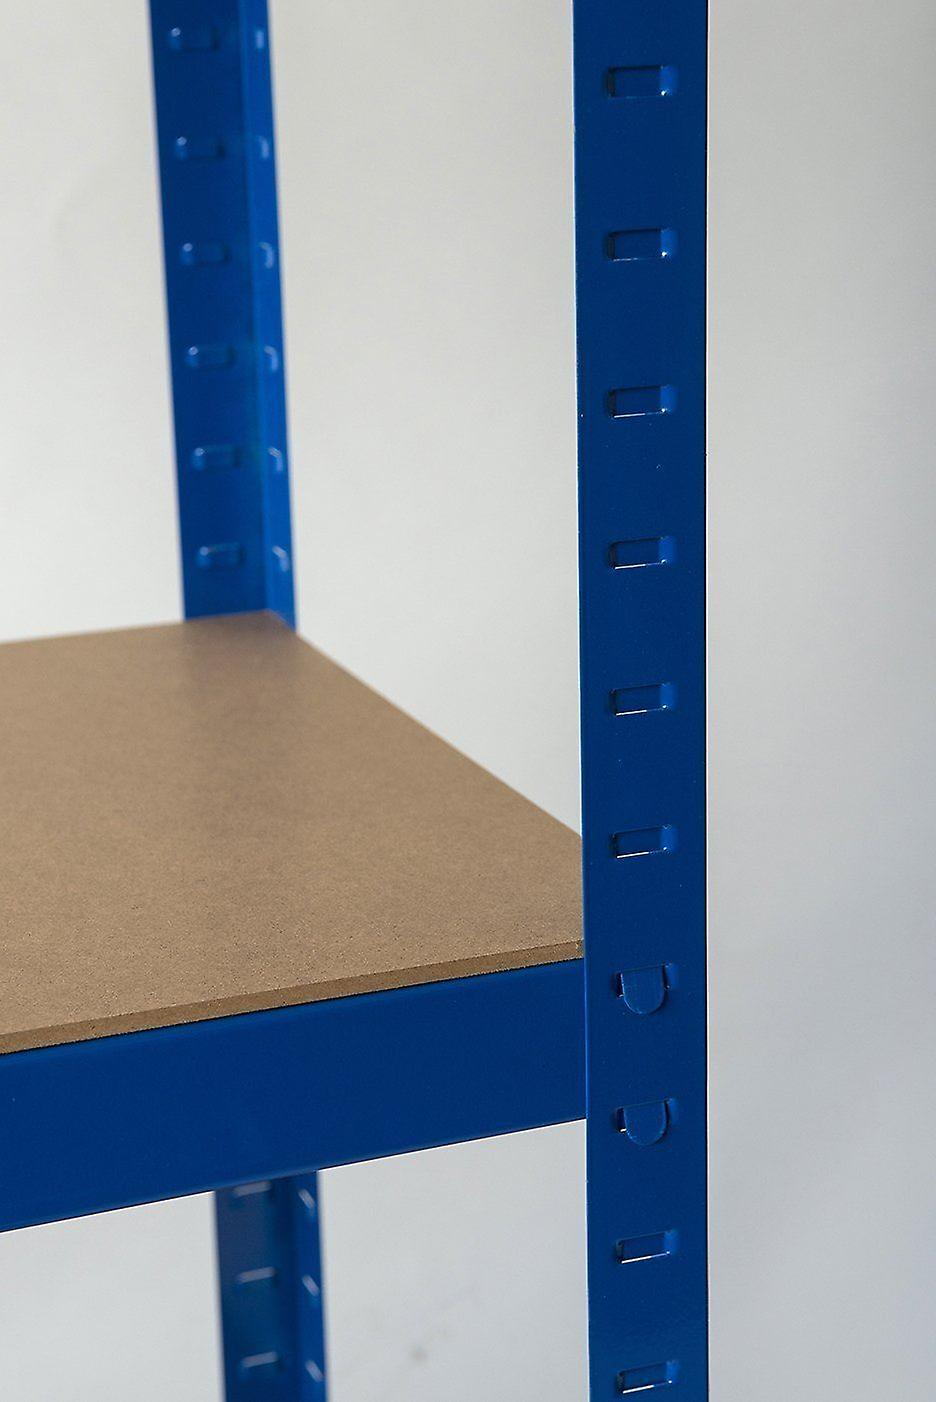 Heavy Duty Steel 5 Tier Racking & Storage Shelves or Workbench - Large 875kg Capacity (Blue)